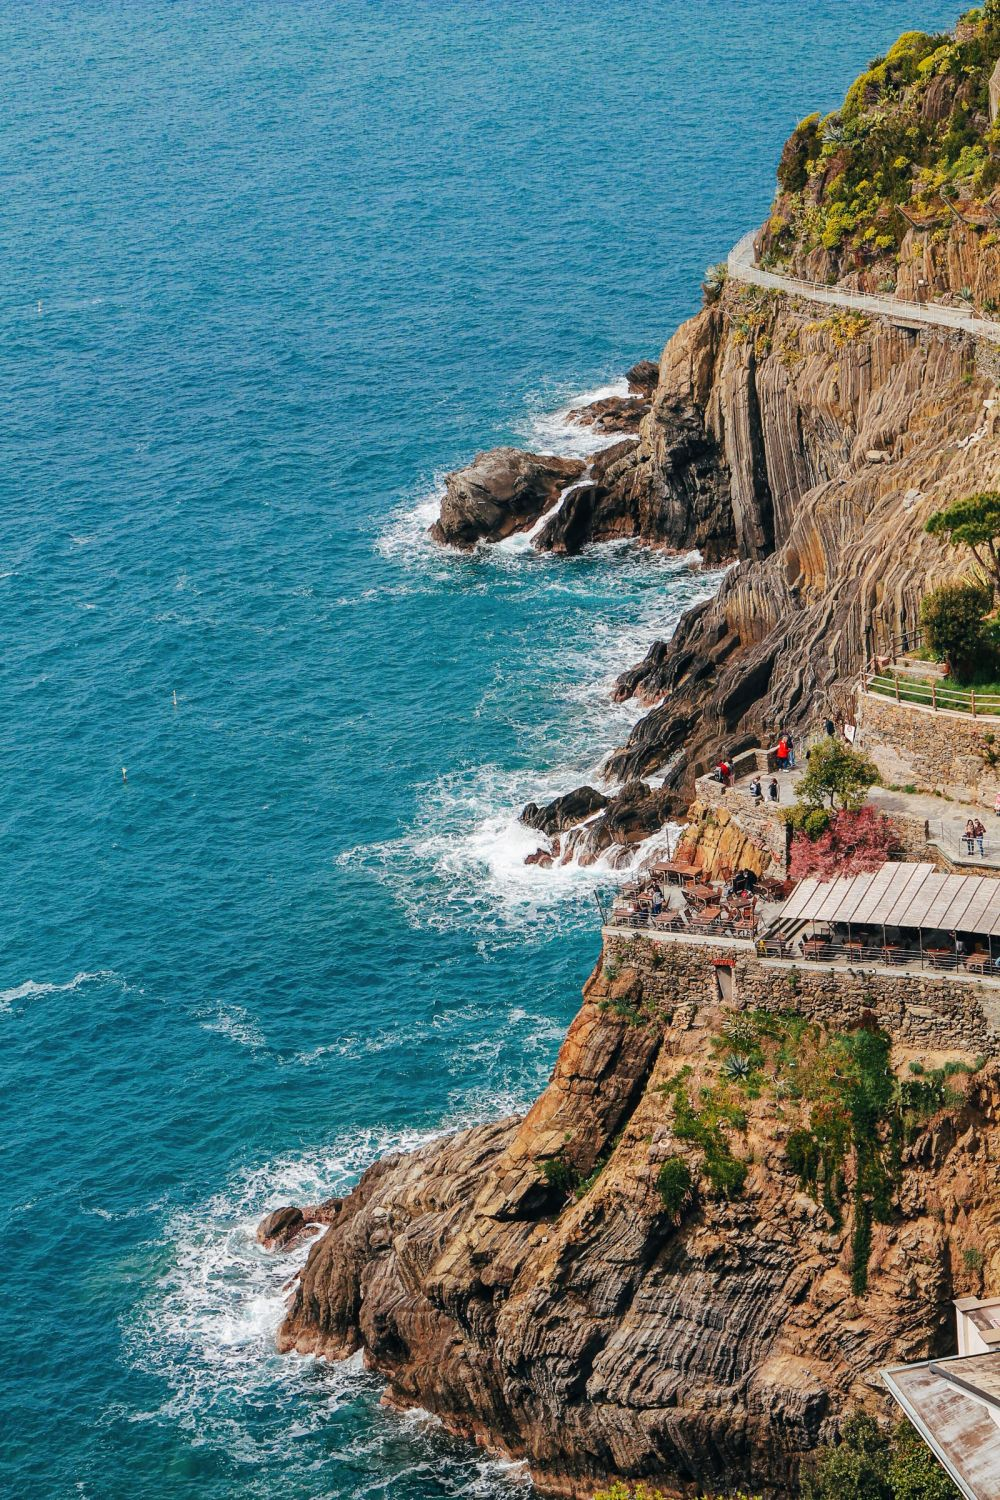 Riomaggiore in Cinque Terre, Italy - The Photo Diary! [1 of 5] (8)